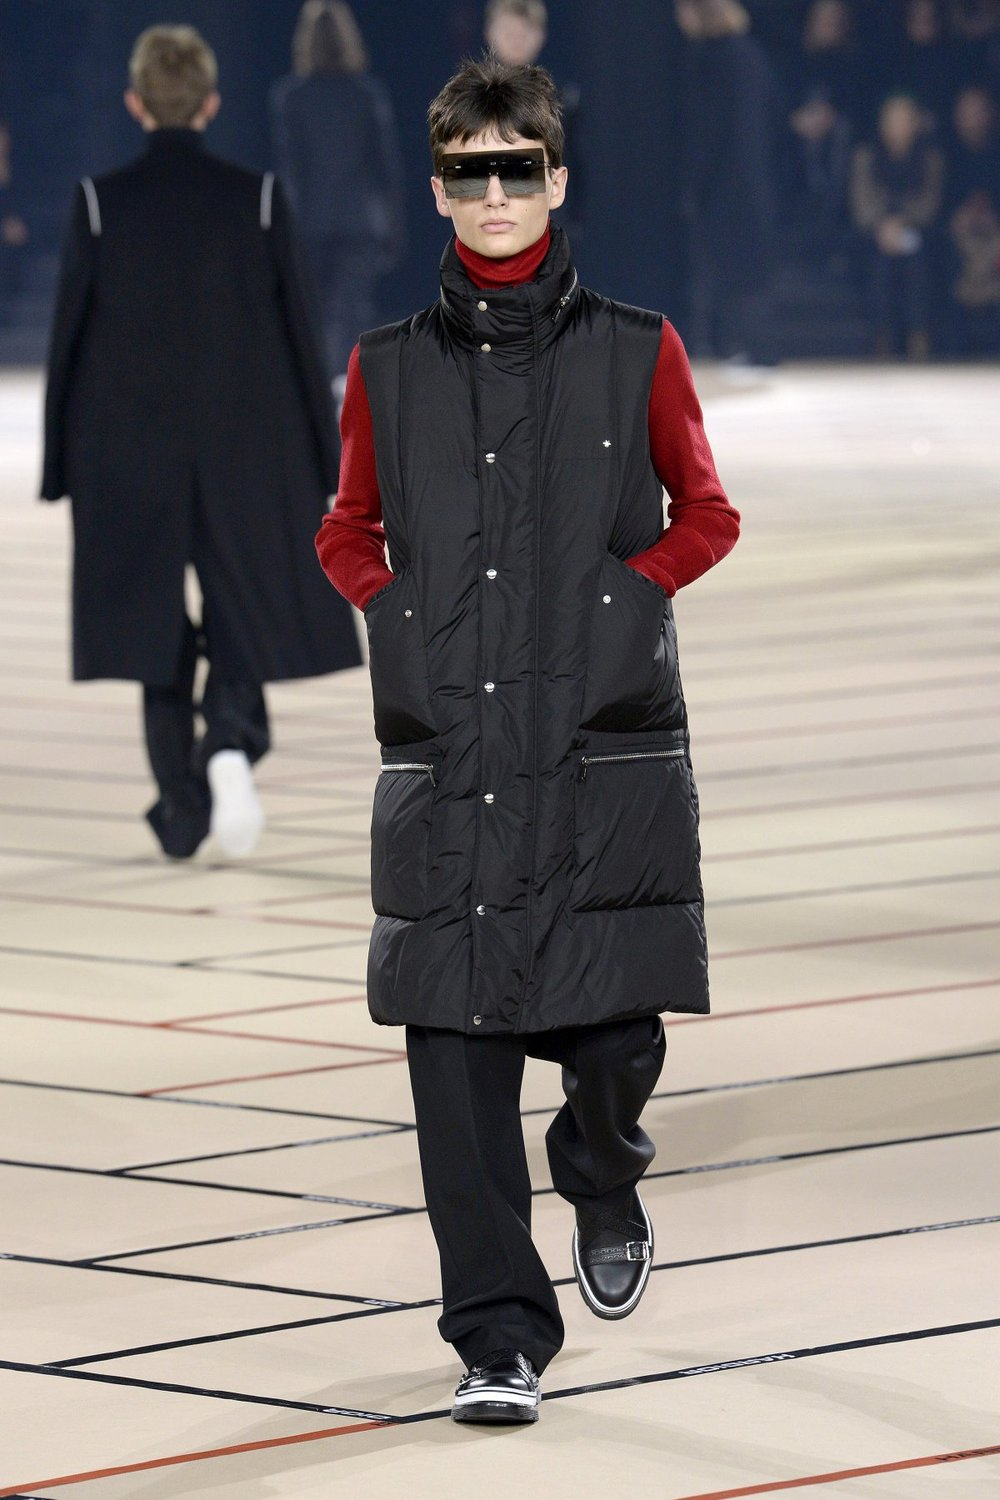 dior_homme_look_10_2017_aw_mens.jpeg